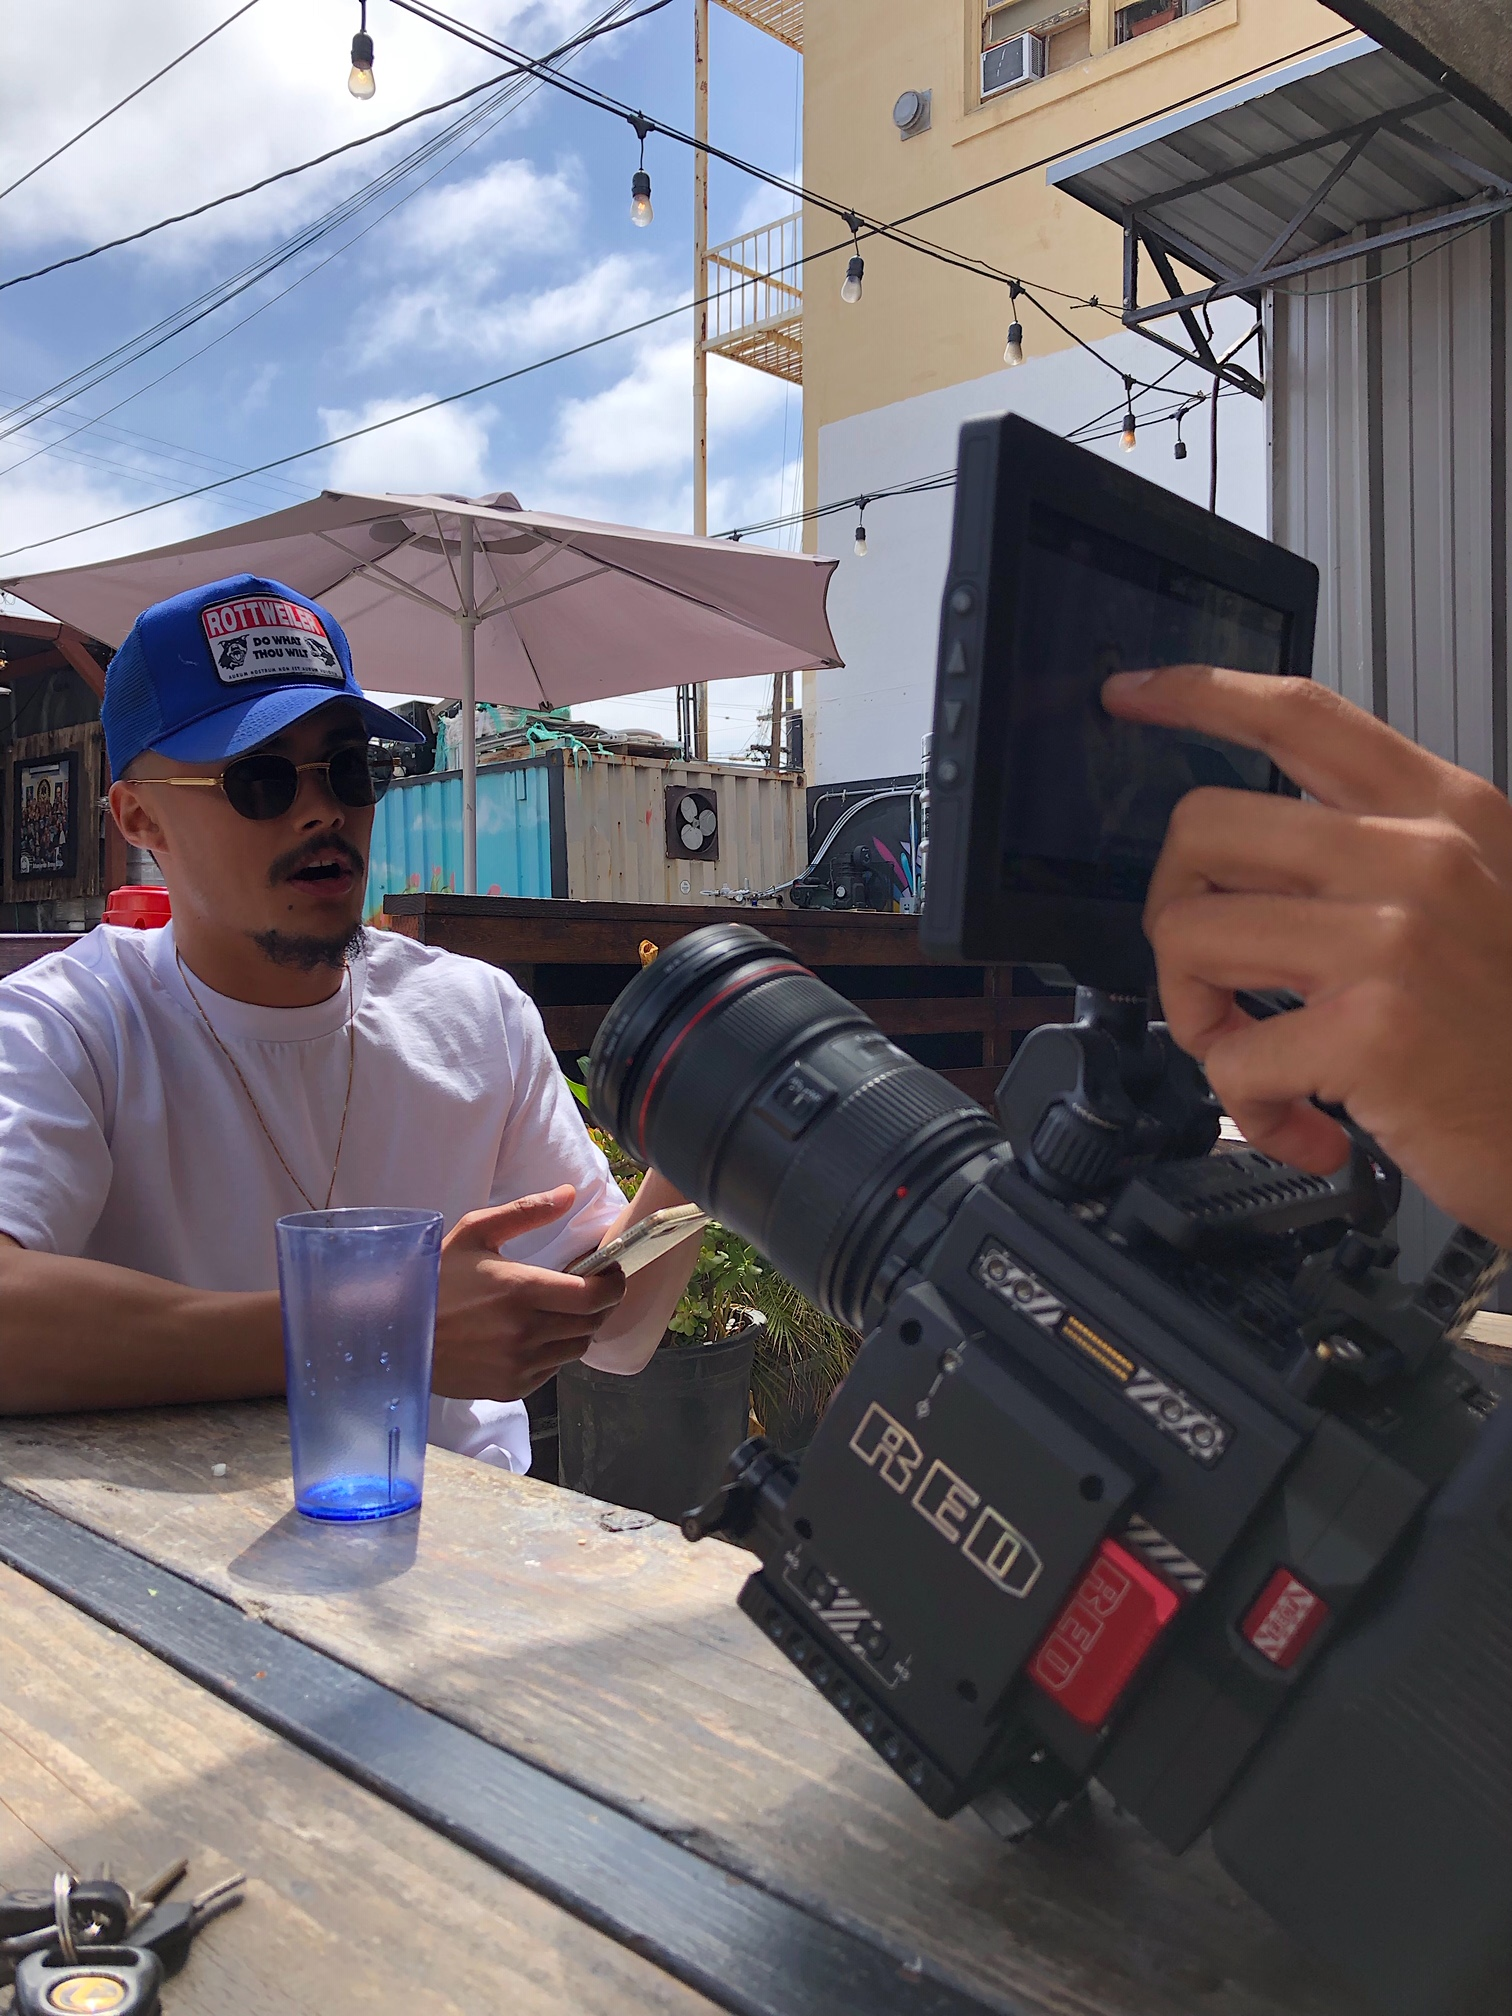 Video was shot with a Red camera! Eric is dead serious about his work.